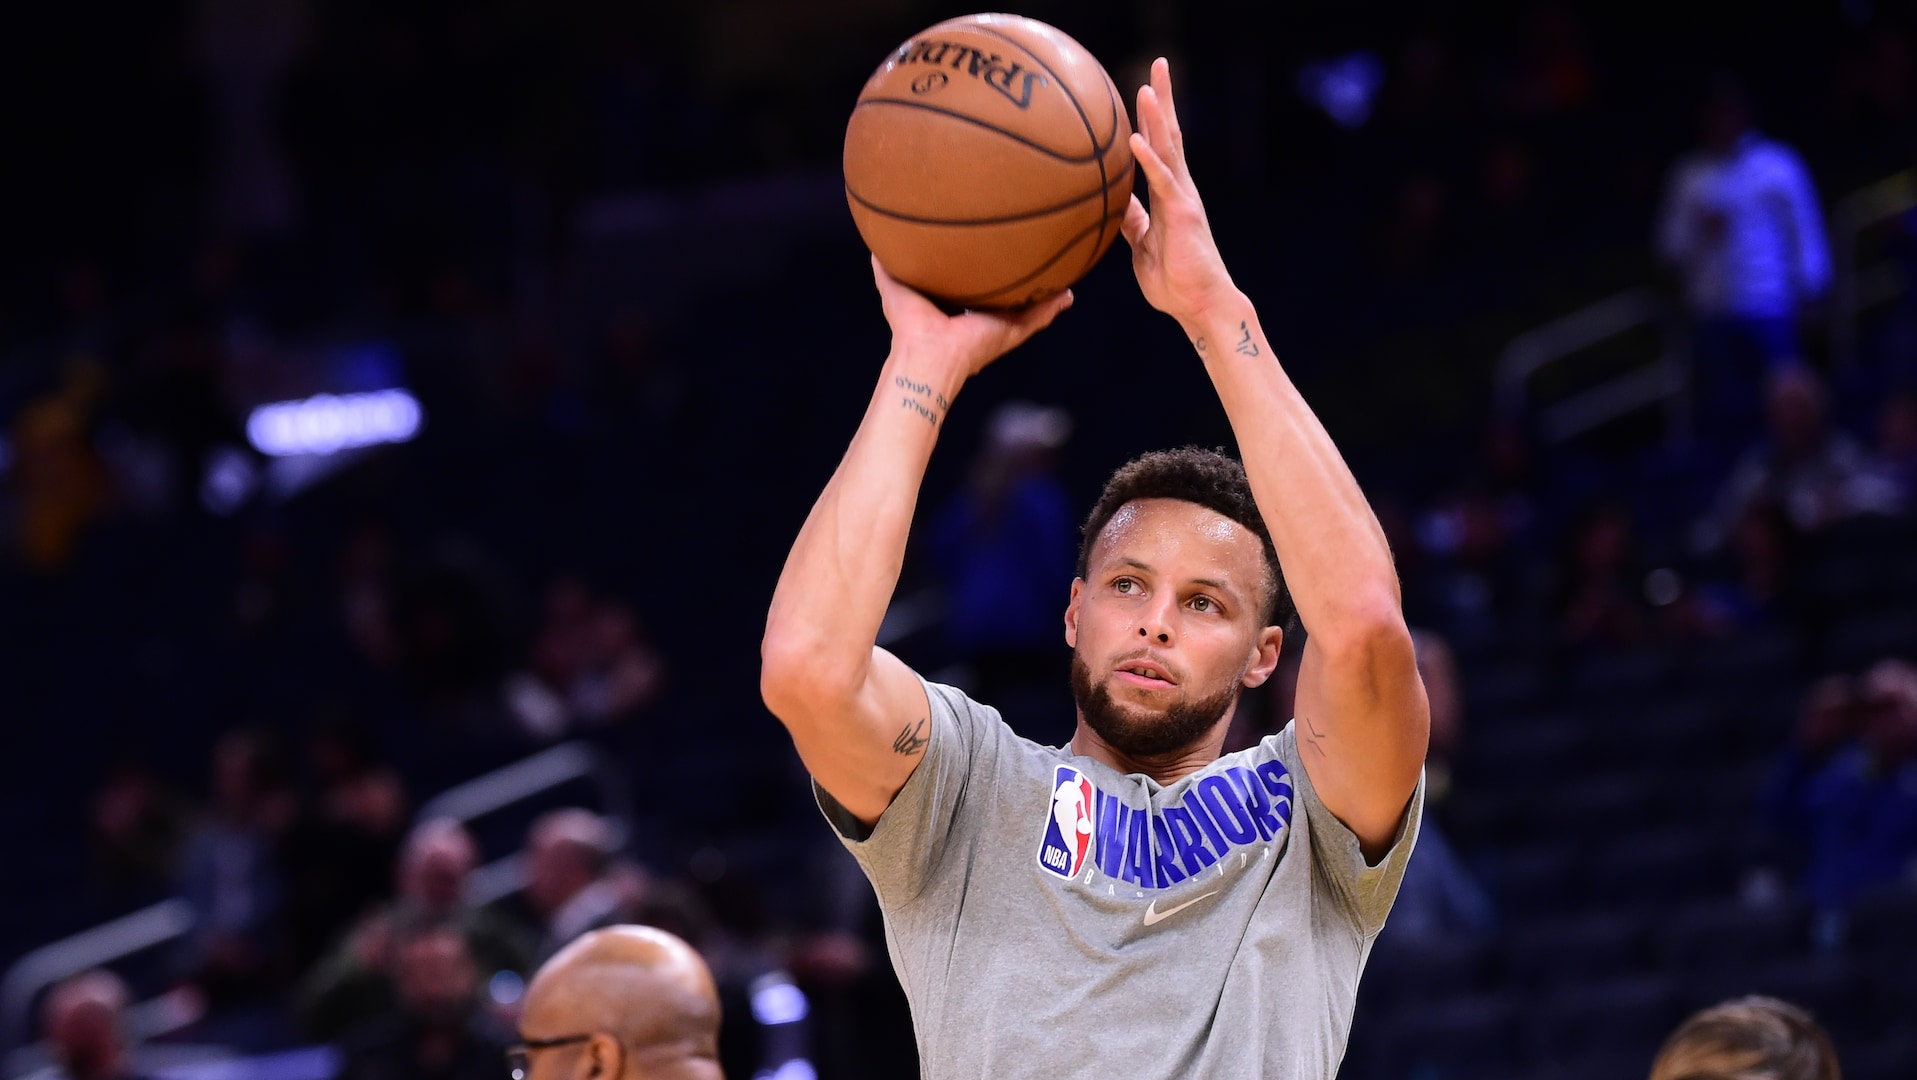 Steve Kerr says Stephen Curry's return Thursday is 'a possibility'